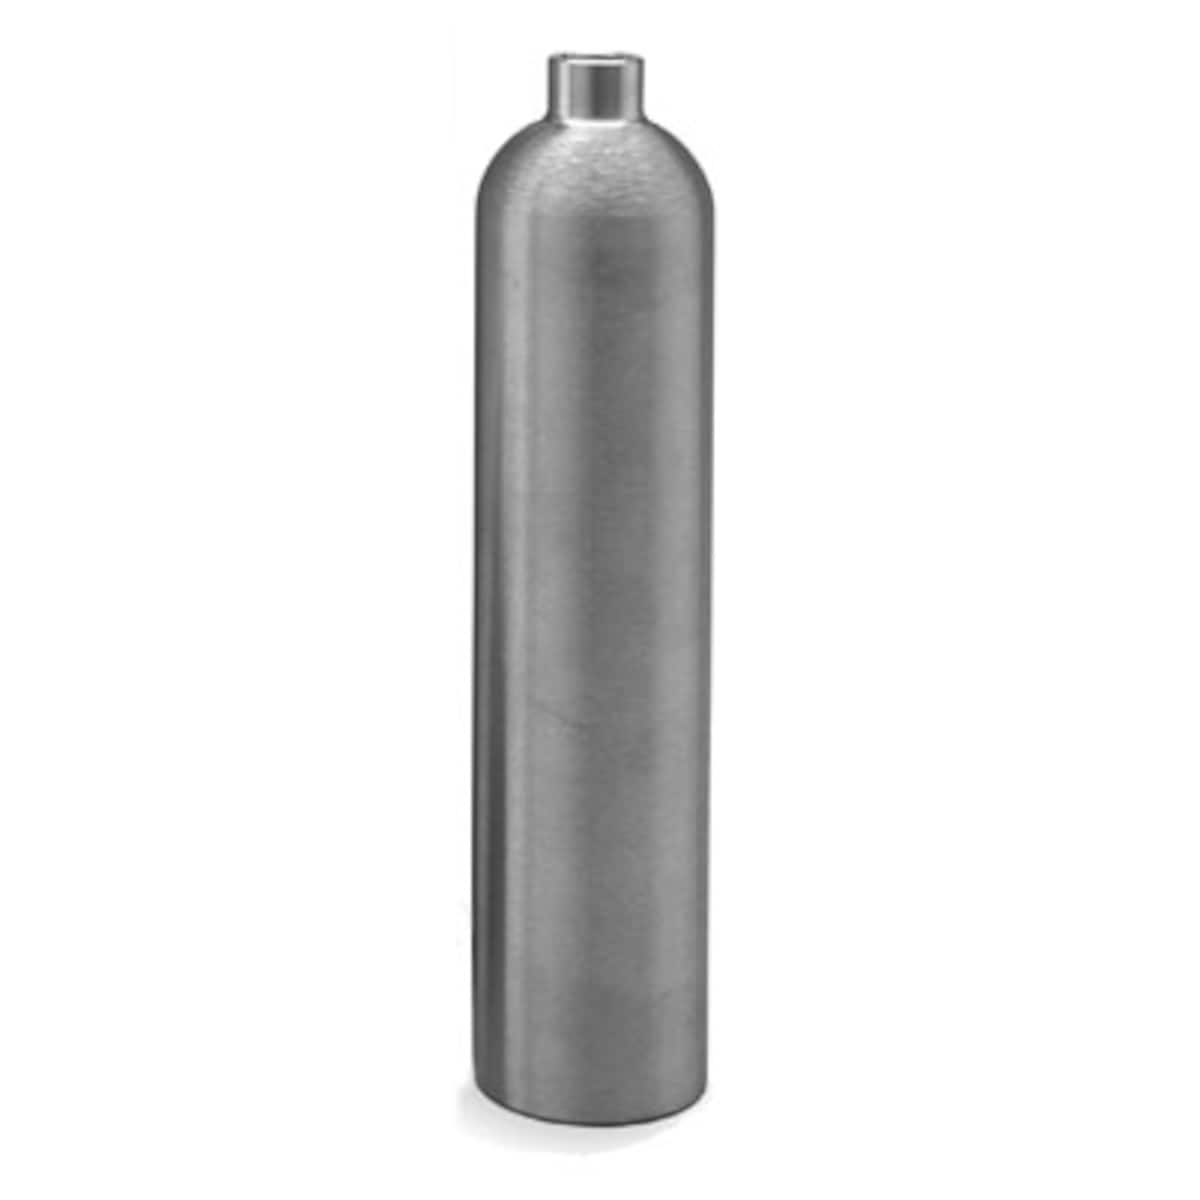 Single-Ended Cylinders